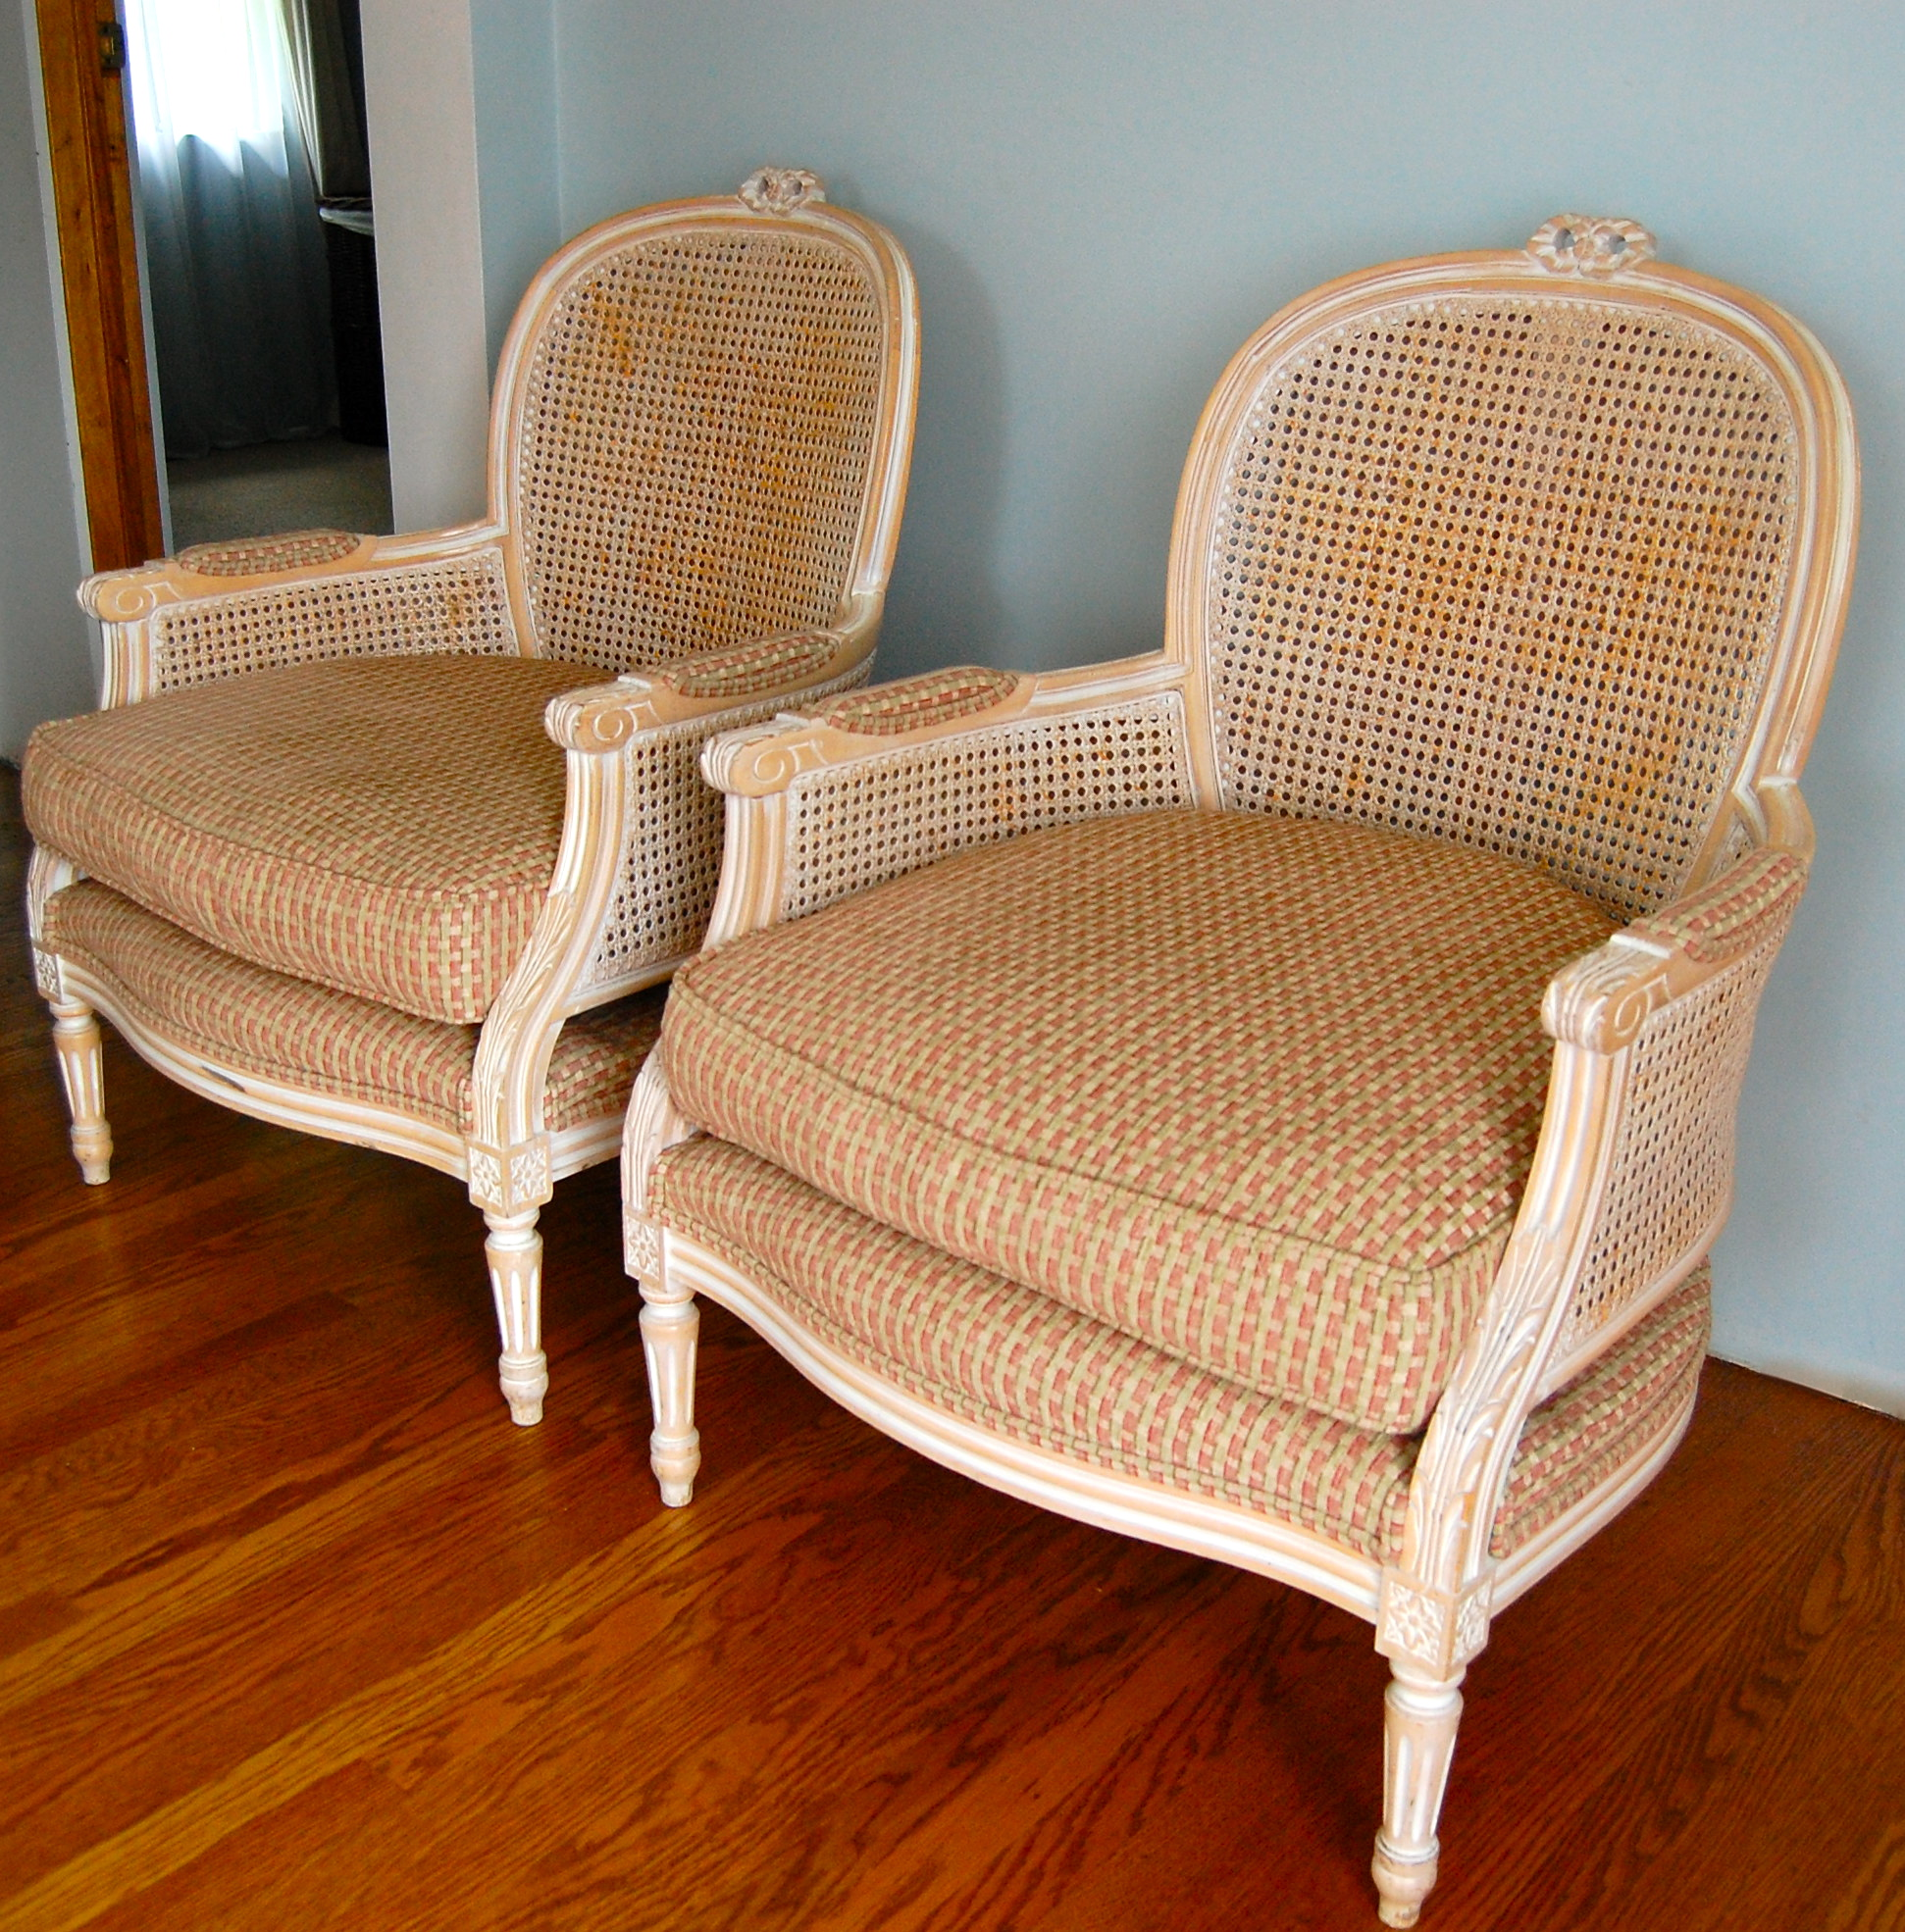 Bergere Chair Decor For Living Room (Image 2 of 7)